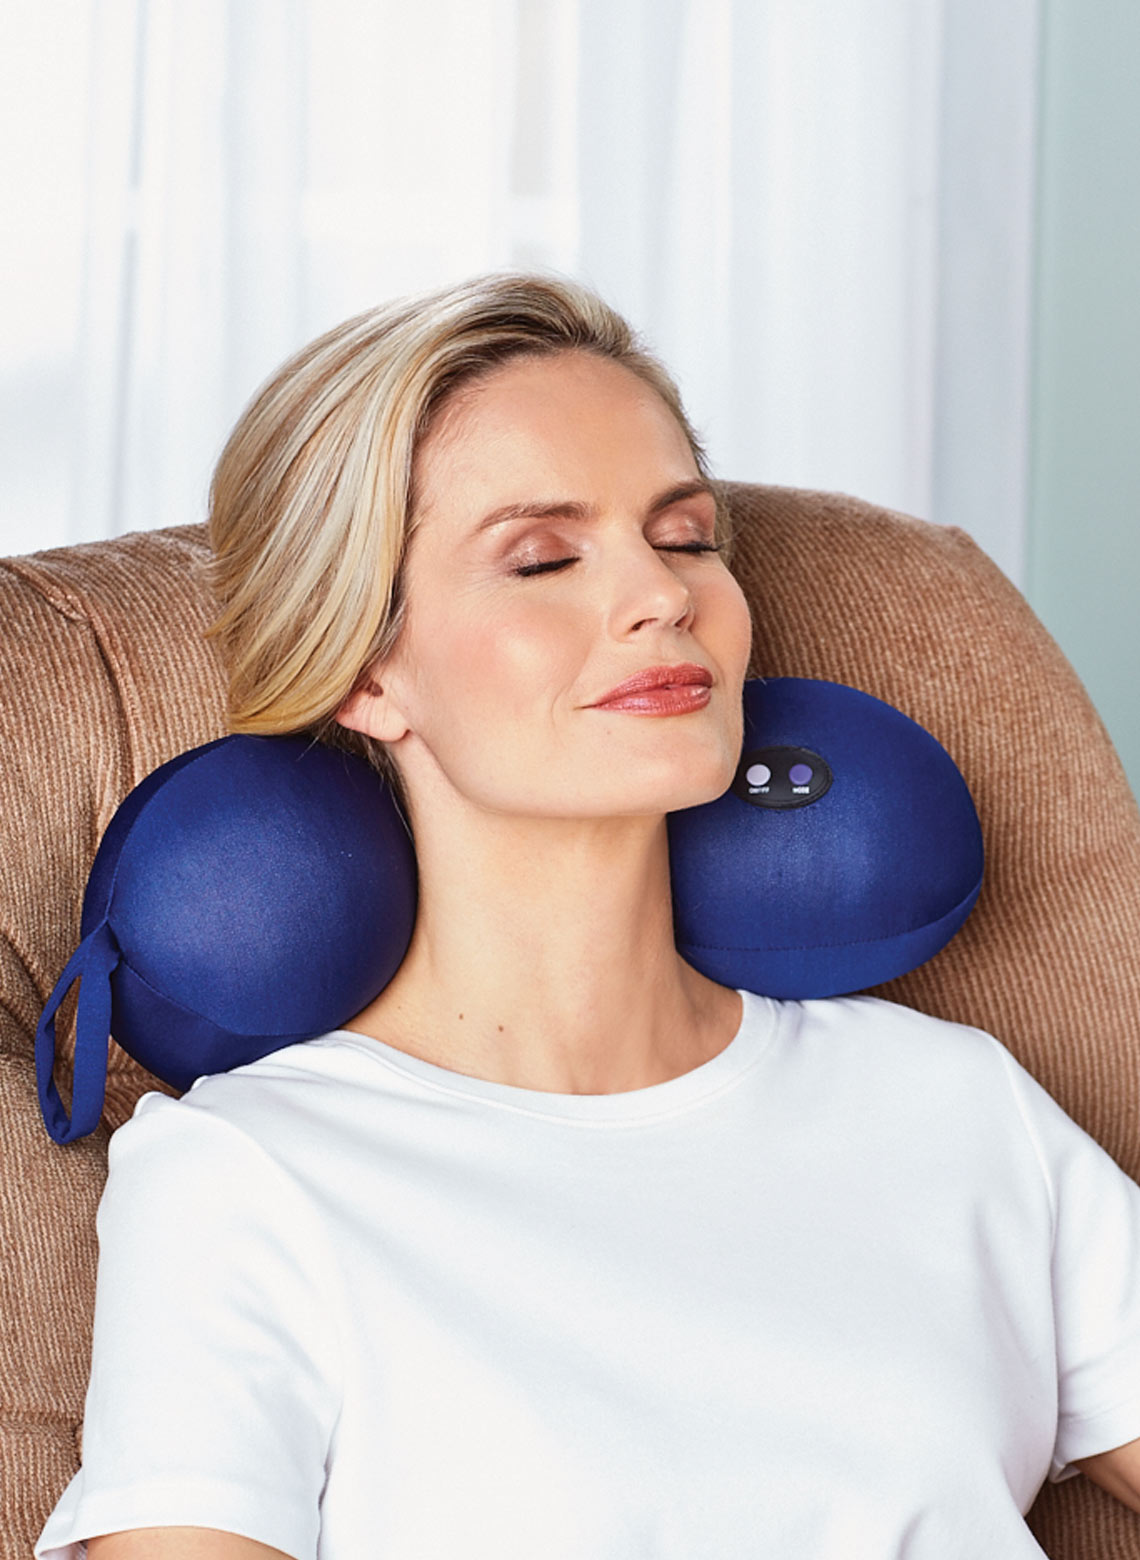 Massage Relaxation Cushion